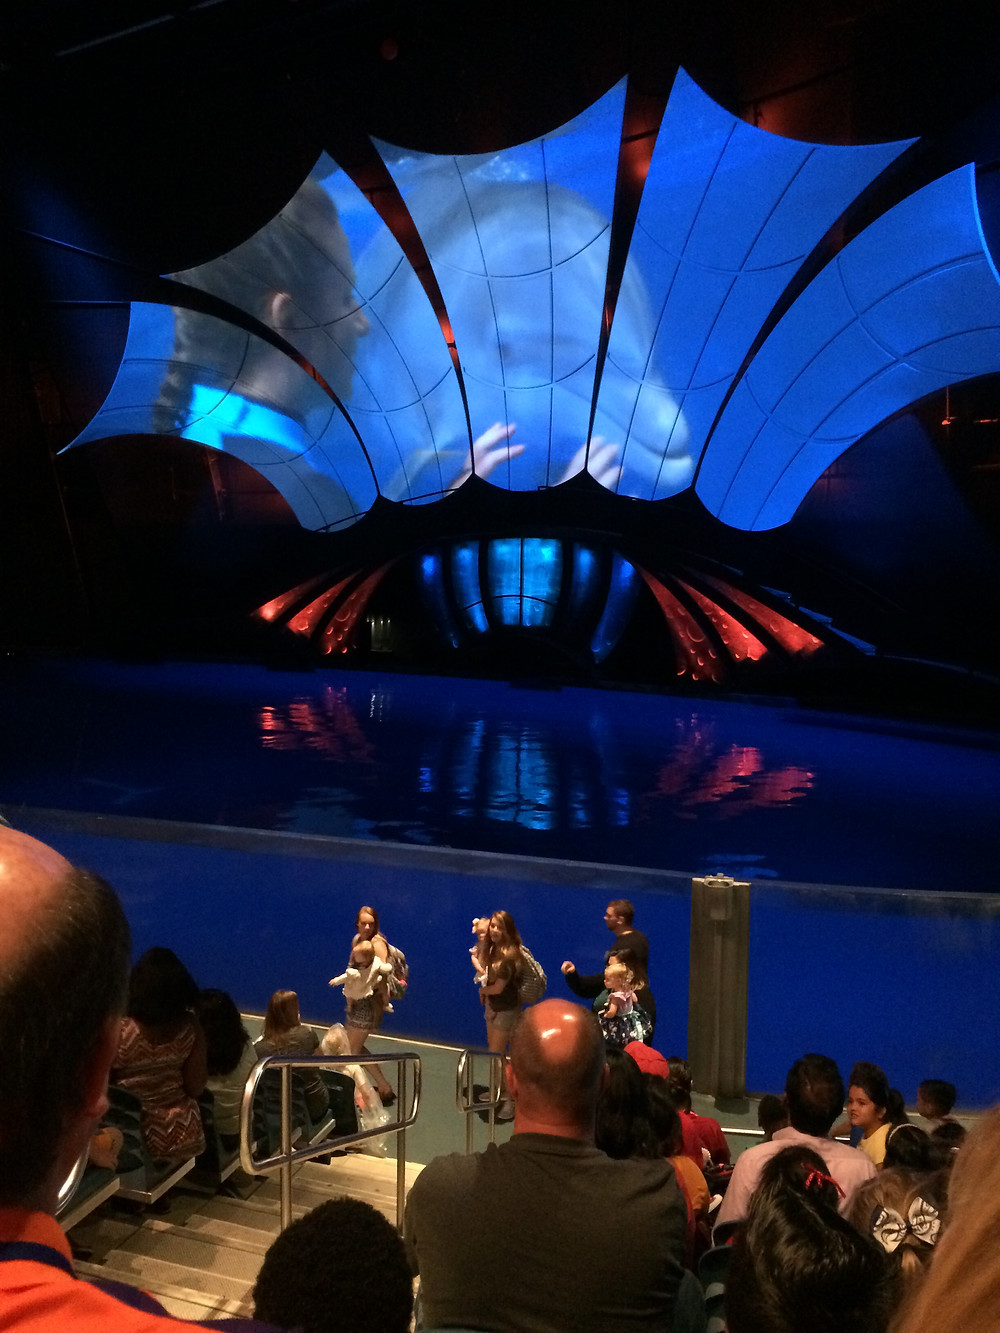 While visiting the aquarium in Atlanta, you definitely want to see the shows.